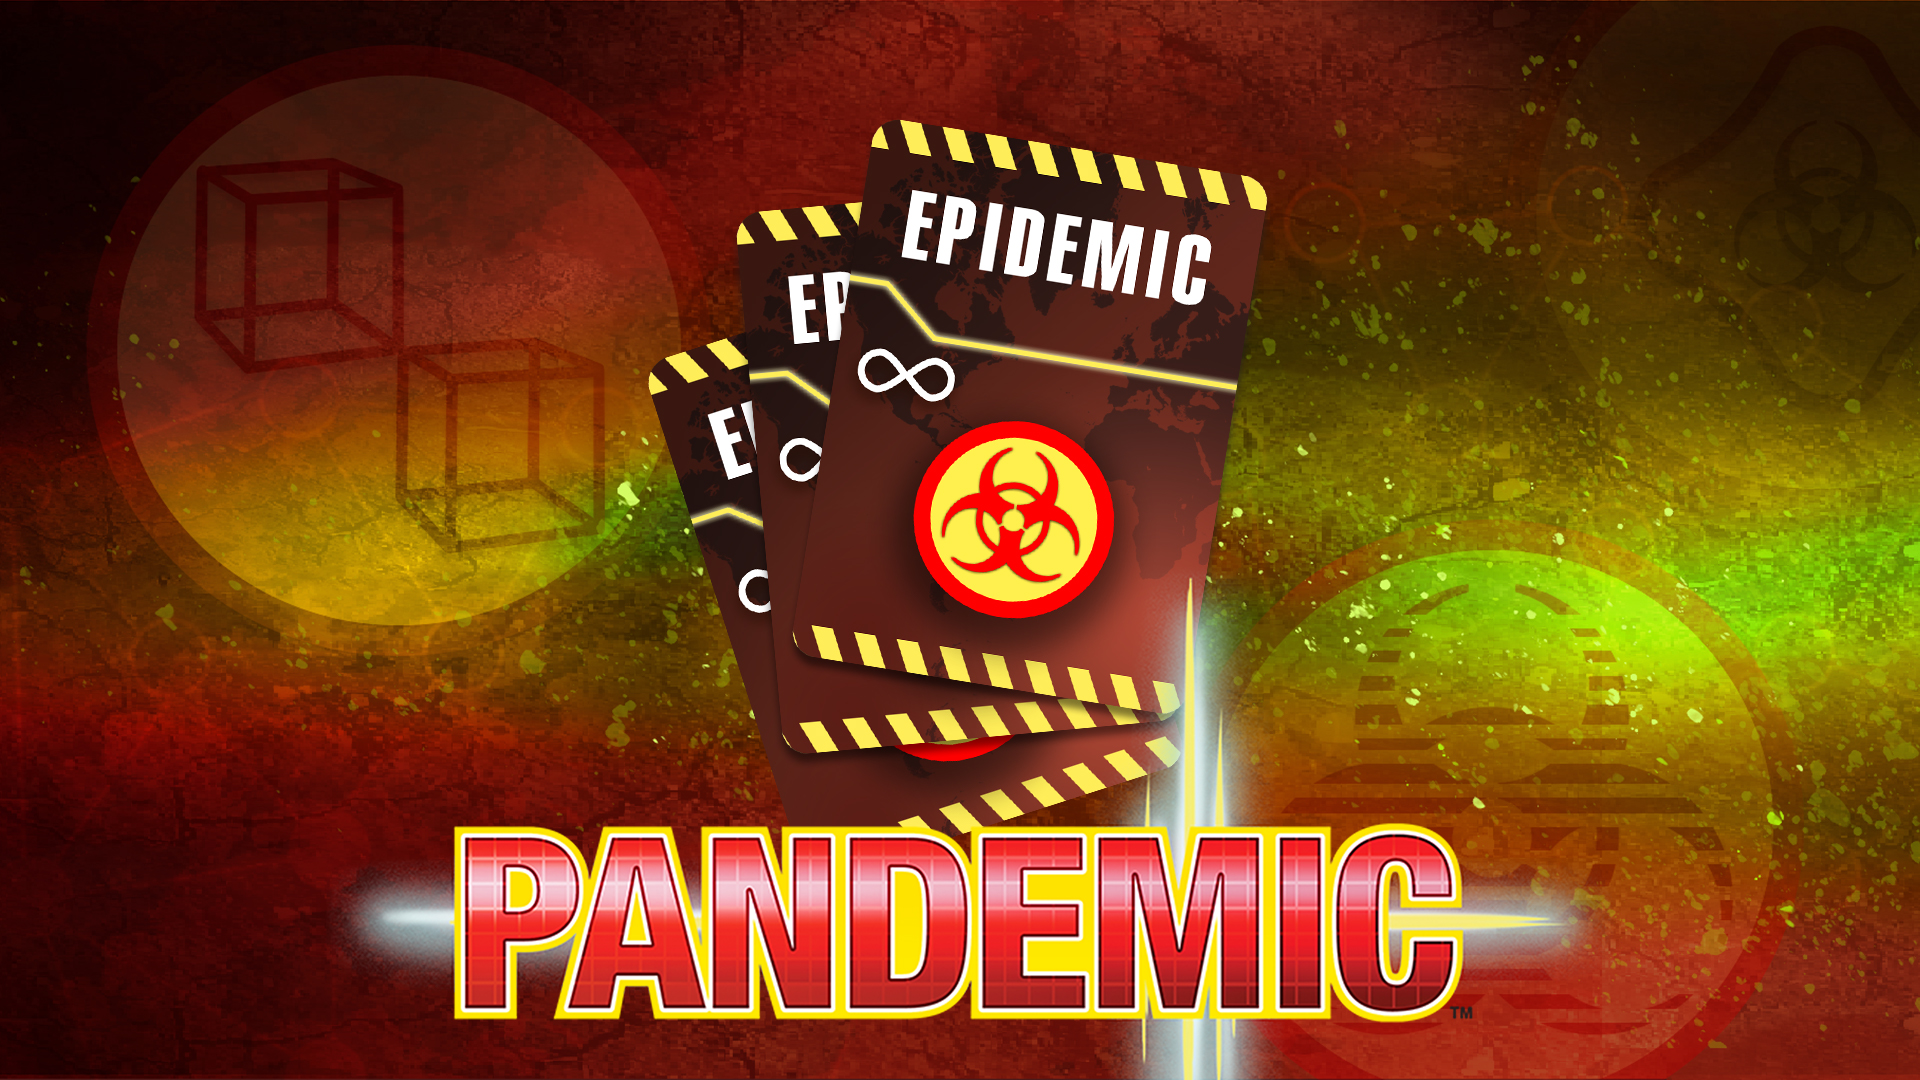 Pandemic: On the Brink - Virulent Strain